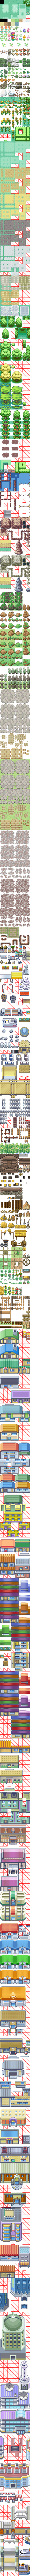 Outside+yellowGarden+Aliernor'sNature_Dexflow_sized.png